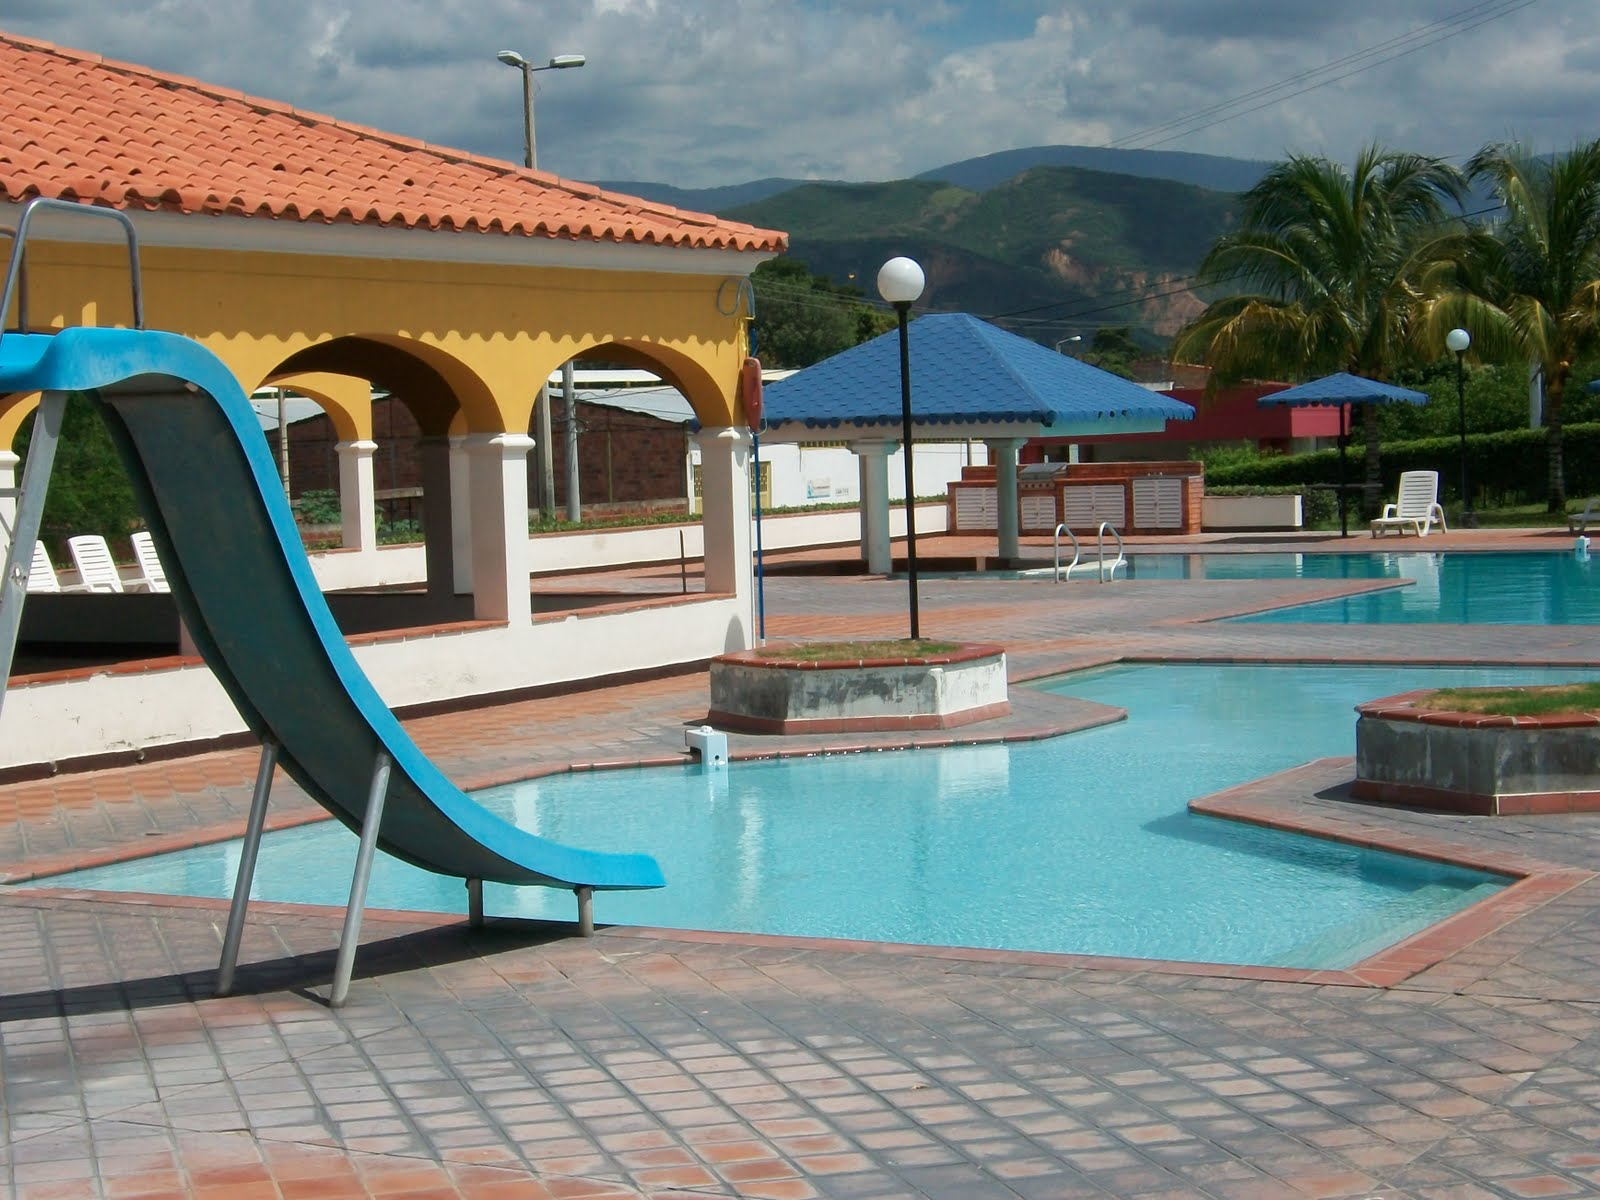 Vendocasaencucuta piscina for Tobogan piscina ninos